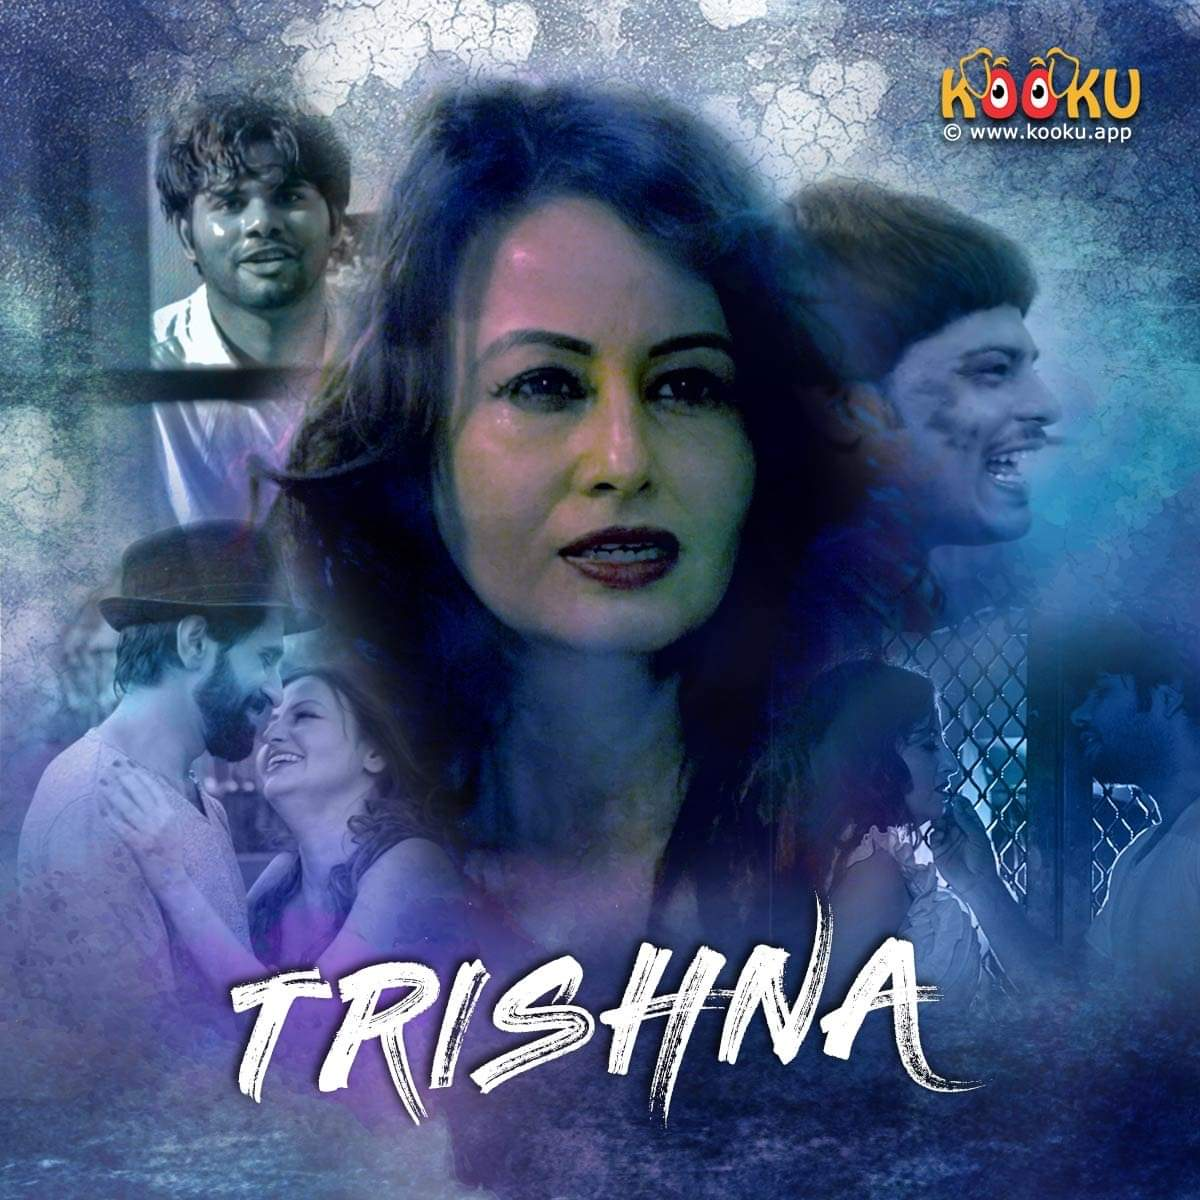 Trishna 2020 Kooku Hindi S01 Complete Web Series 400MB HDRip 480p Download